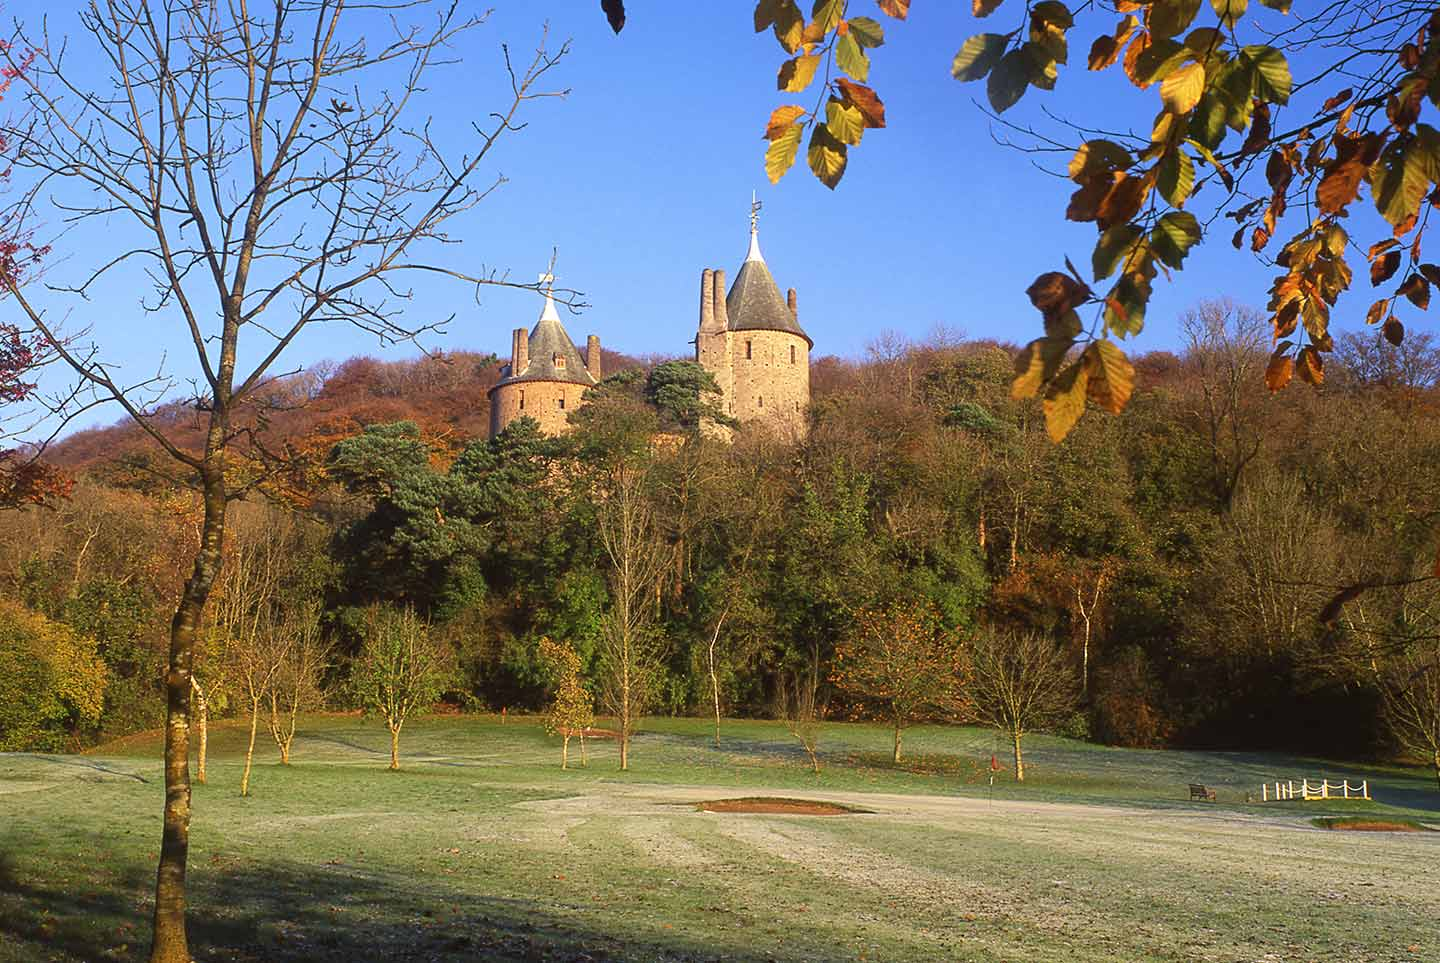 Image of Castell Coch, on the outskirts of Cardiff